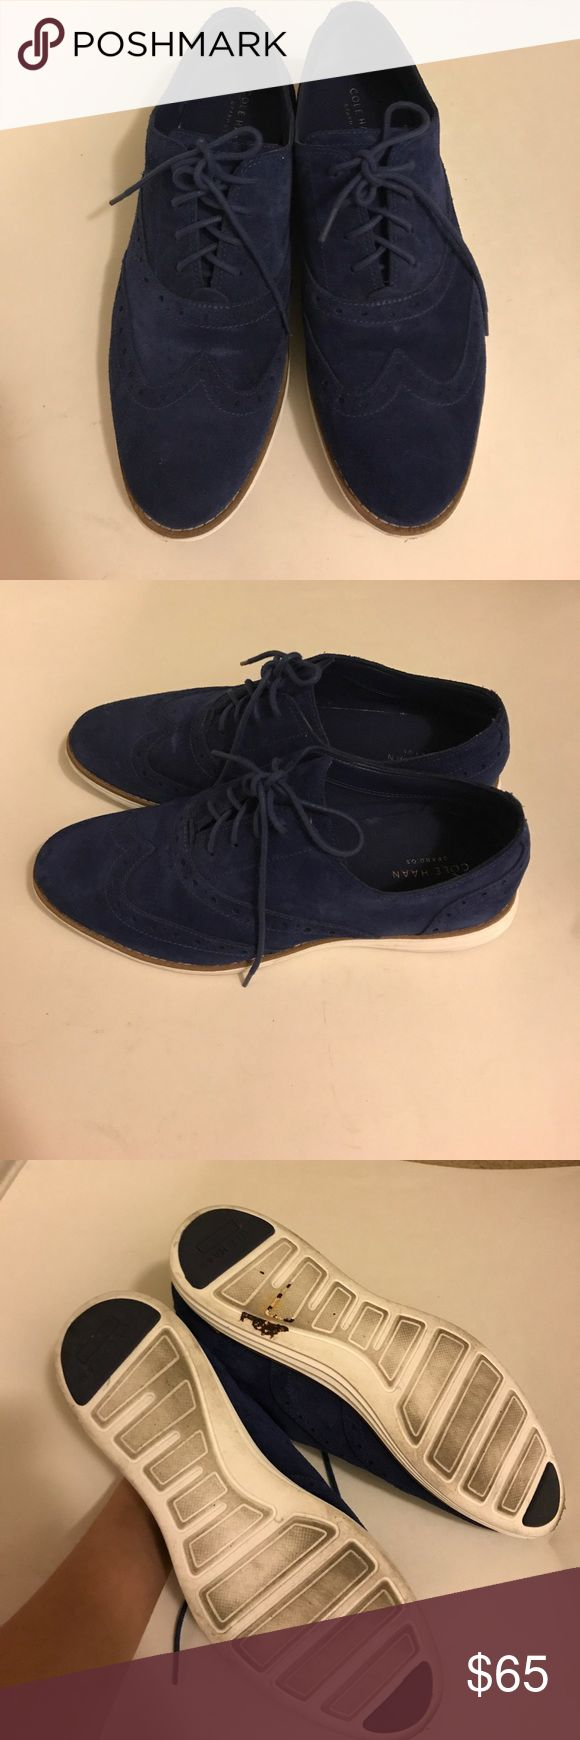 Cole Han Women's Blue Suede Oxford size 8B Almost new. Worn only once. Beautiful blue suede oxfords by Cole Haan Cole Haan Shoes